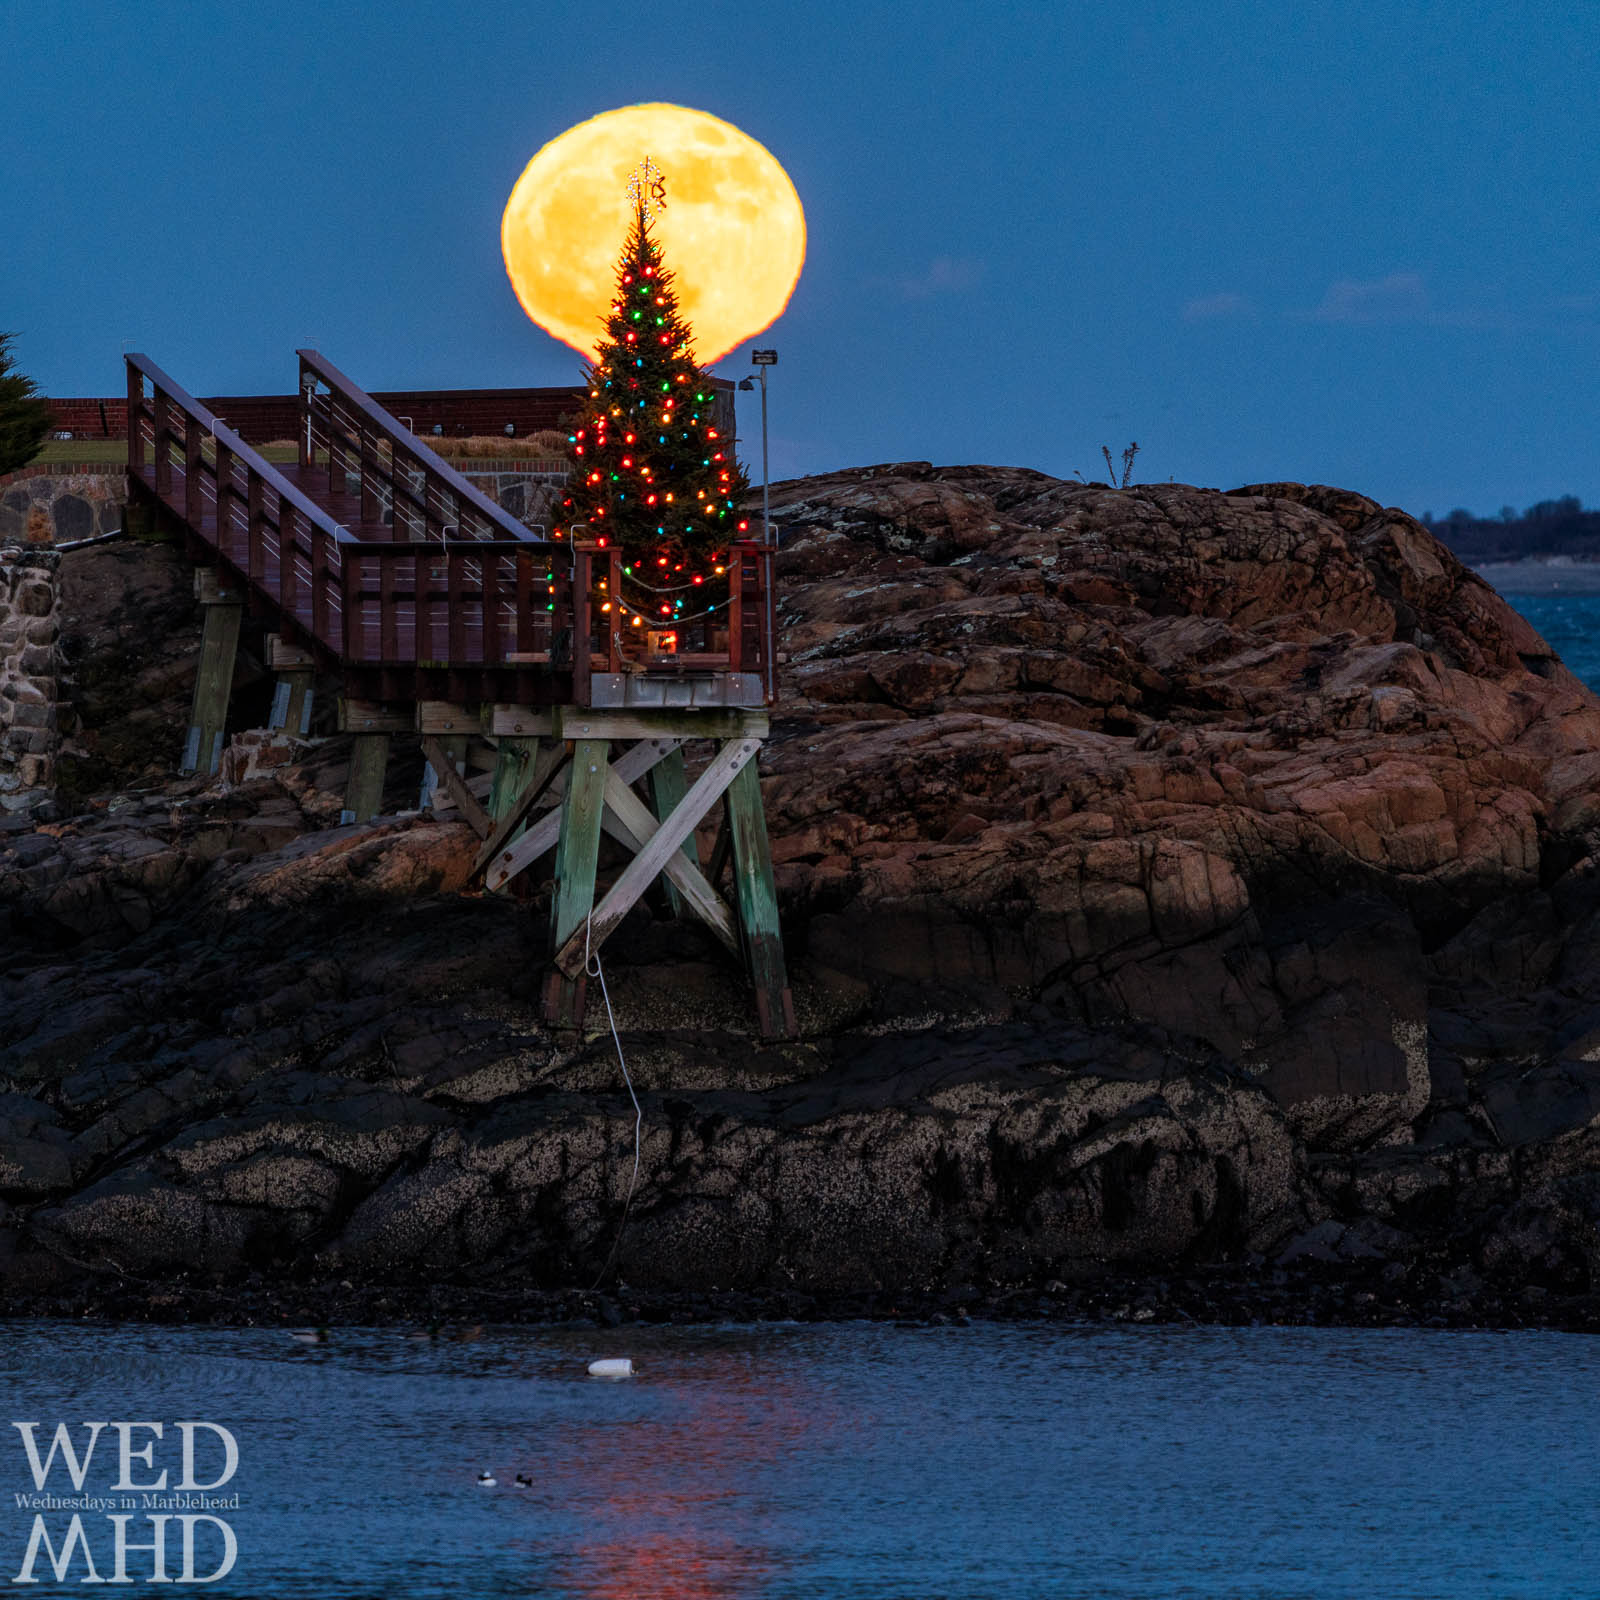 The full moon rises over a lit Christmas tree positioned at the end of a pier on Doliber Cove creating a picture-perfect image of a  Christmas moon